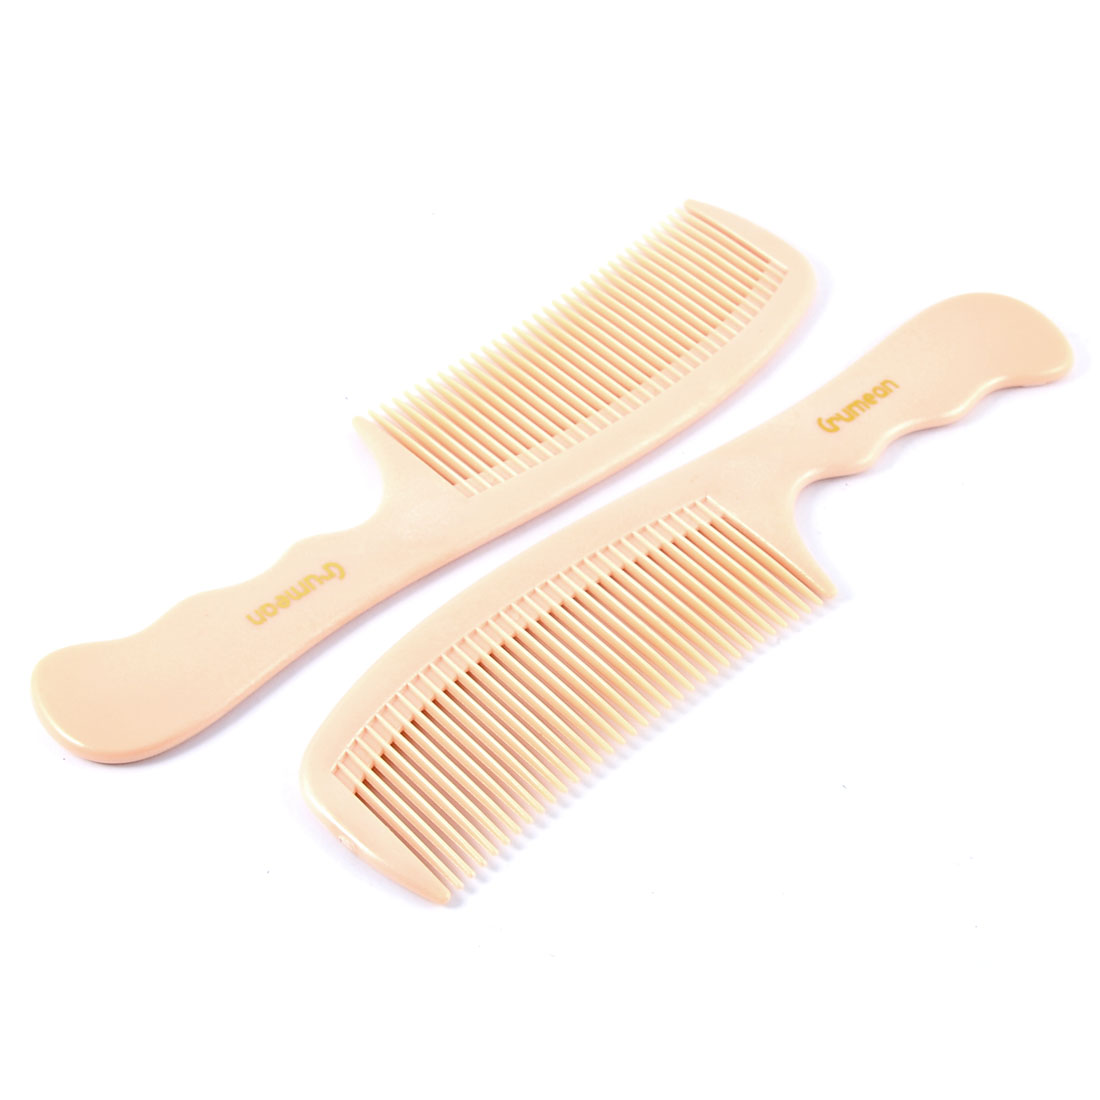 Hairdressing Salon Styling Hairstyle Hair Comb Beauty Tool Light Pink 2PCS